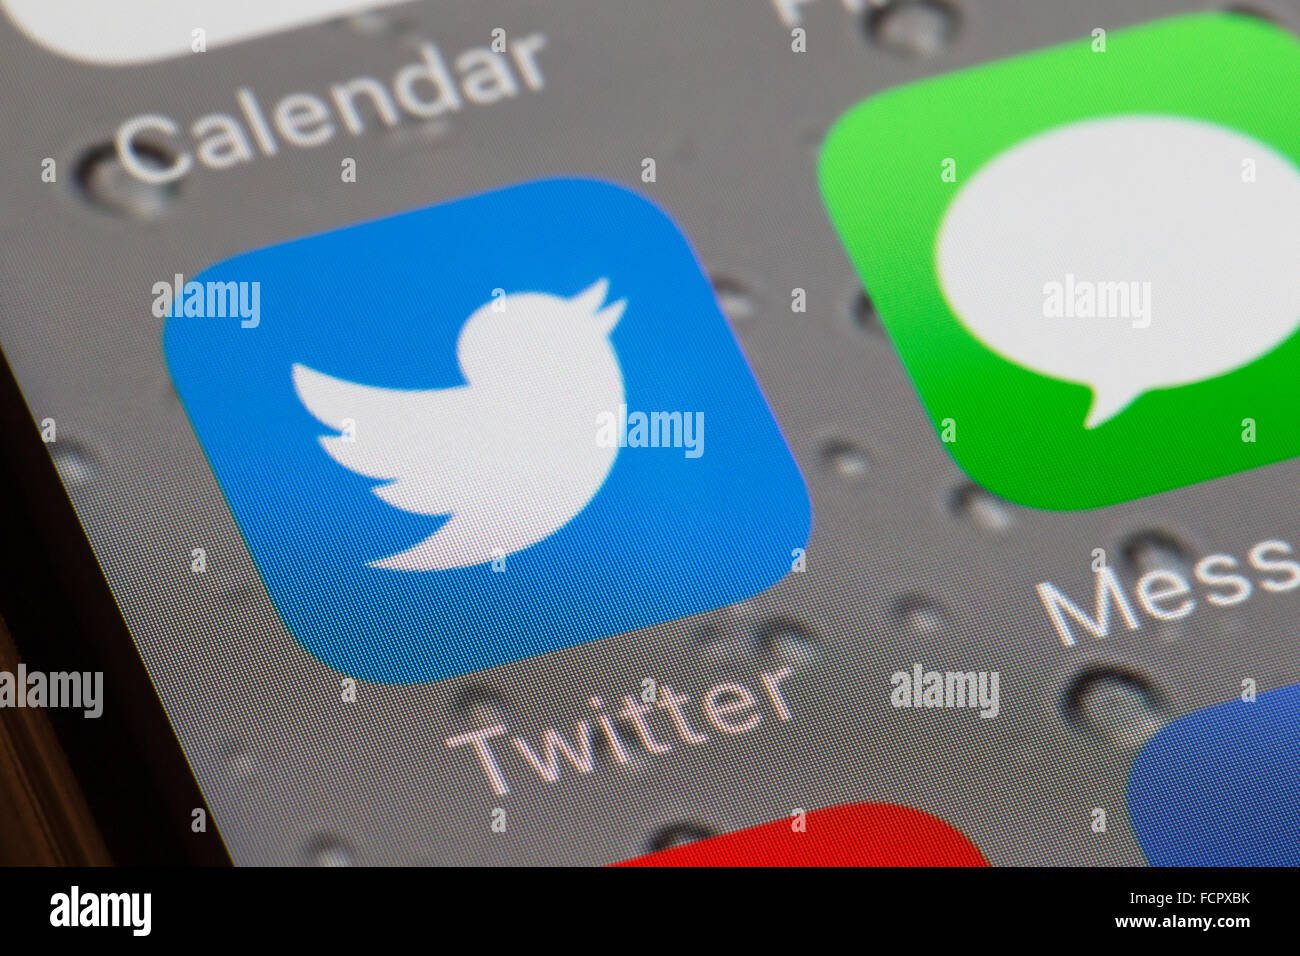 Twitter app icon on an iphone 6 screen - Stock Image